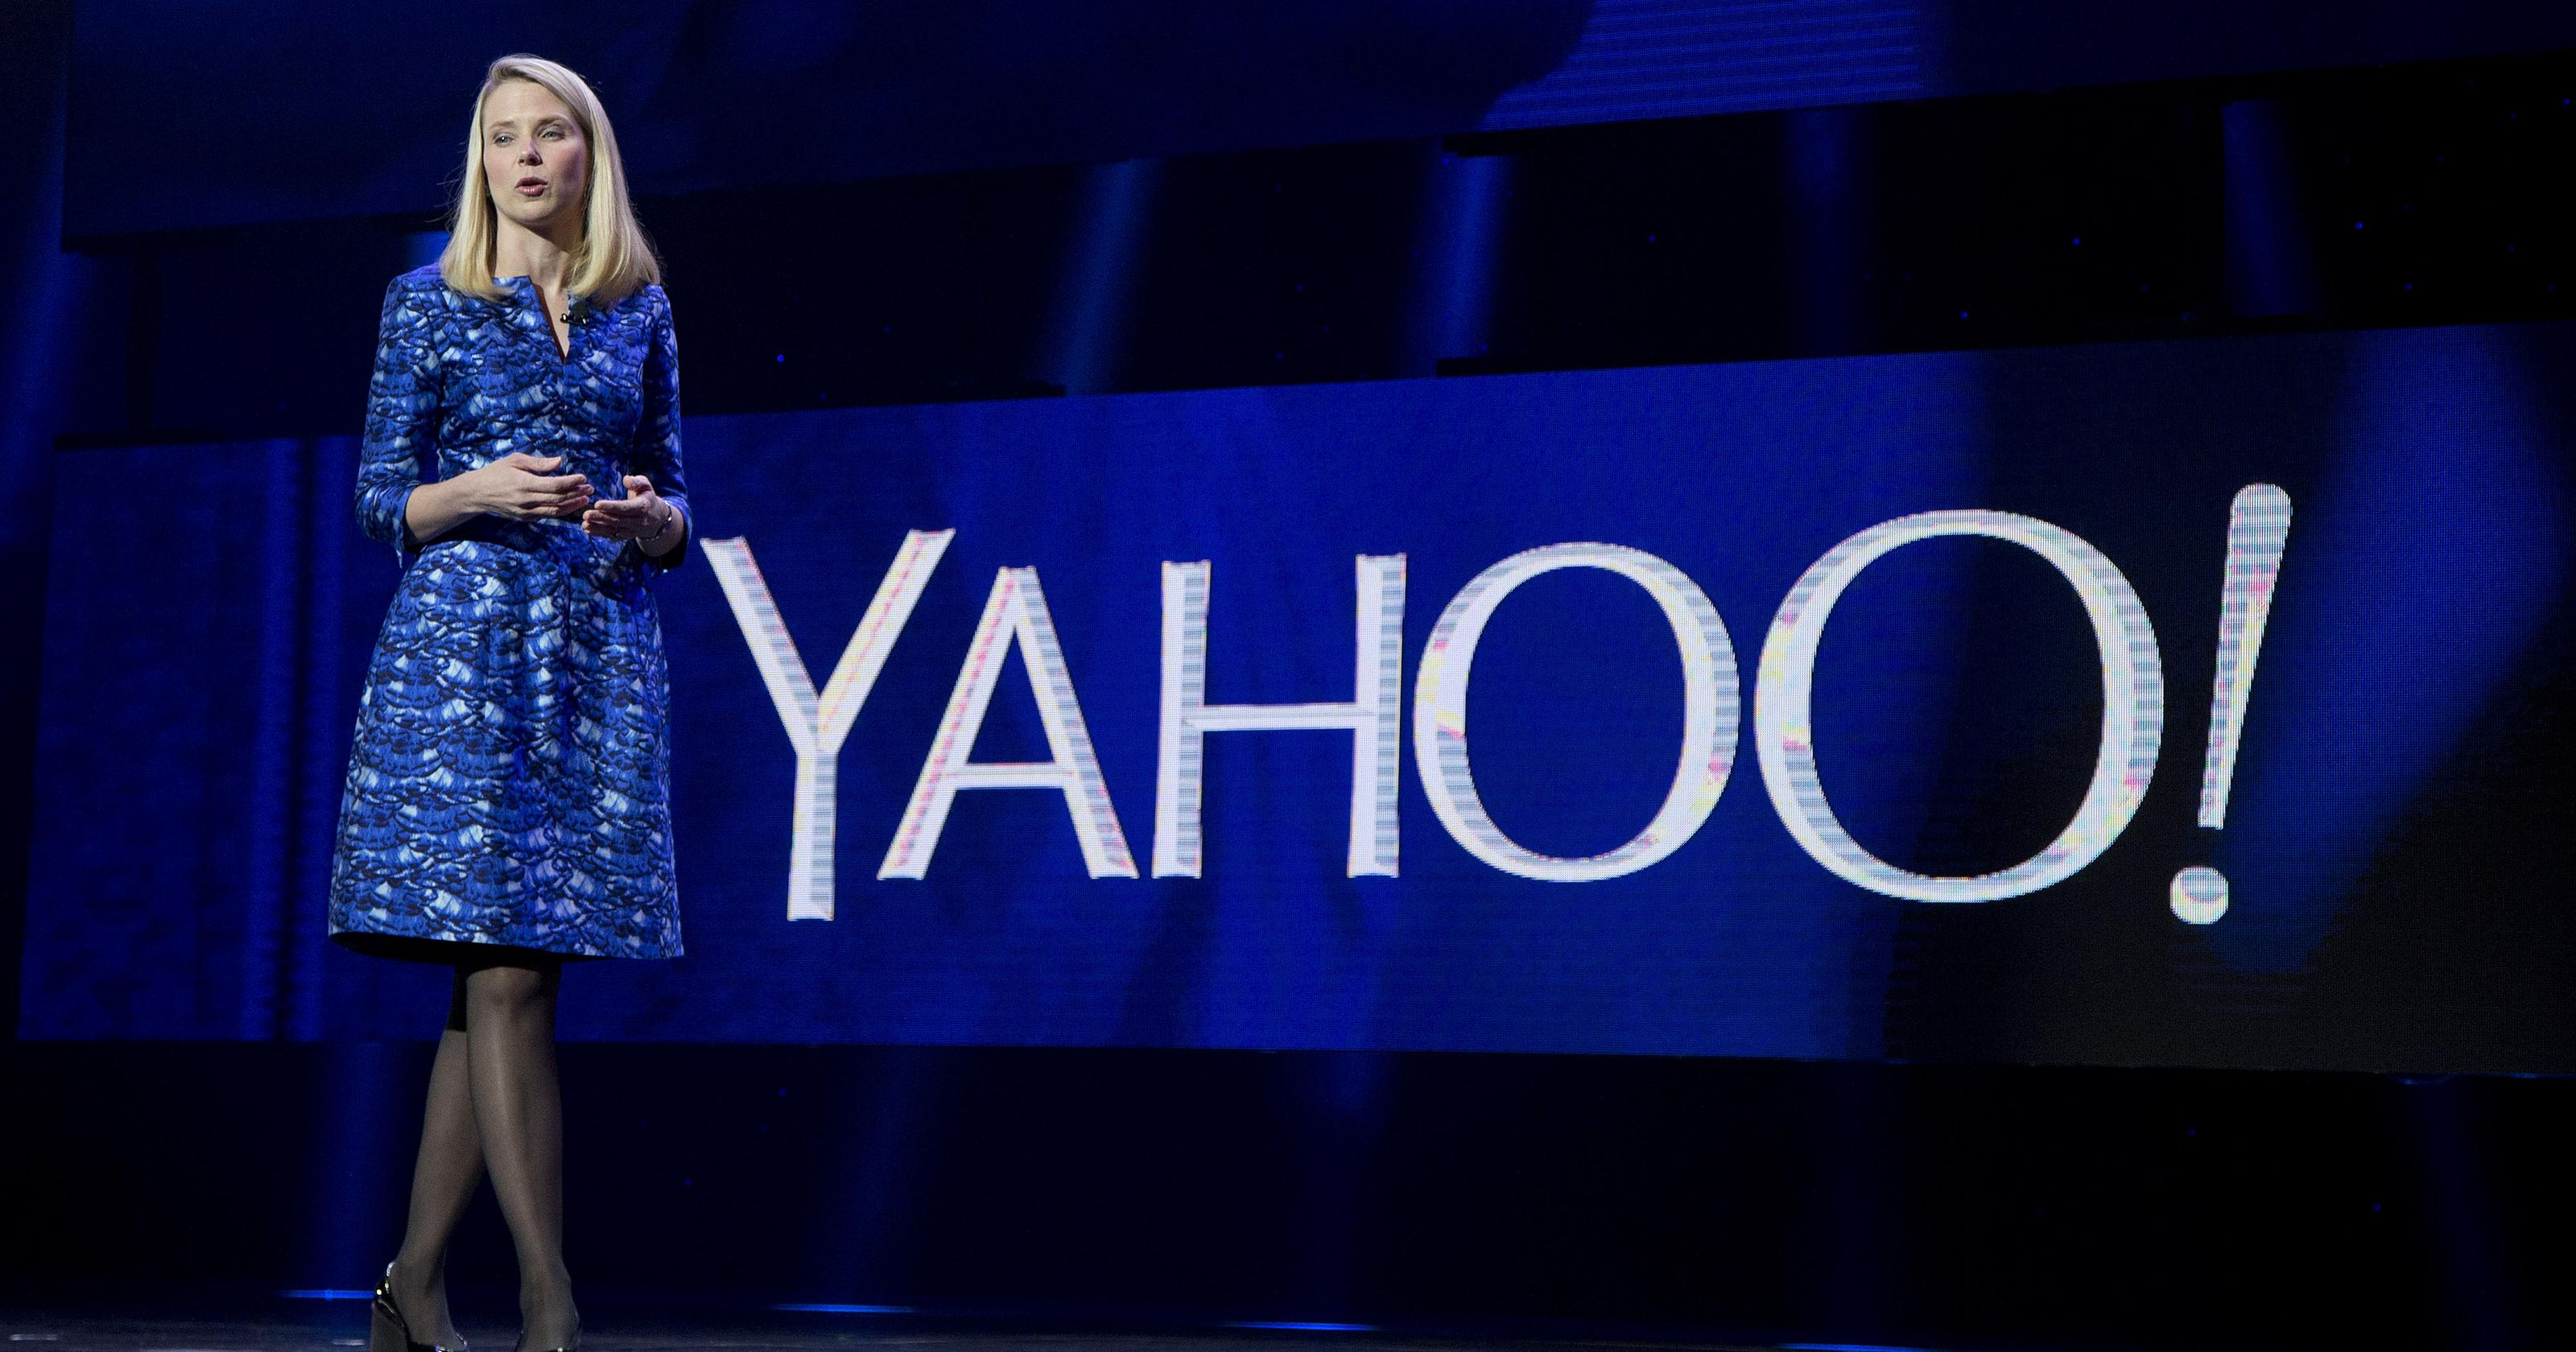 Yahoo CEO, Marissa Mayer